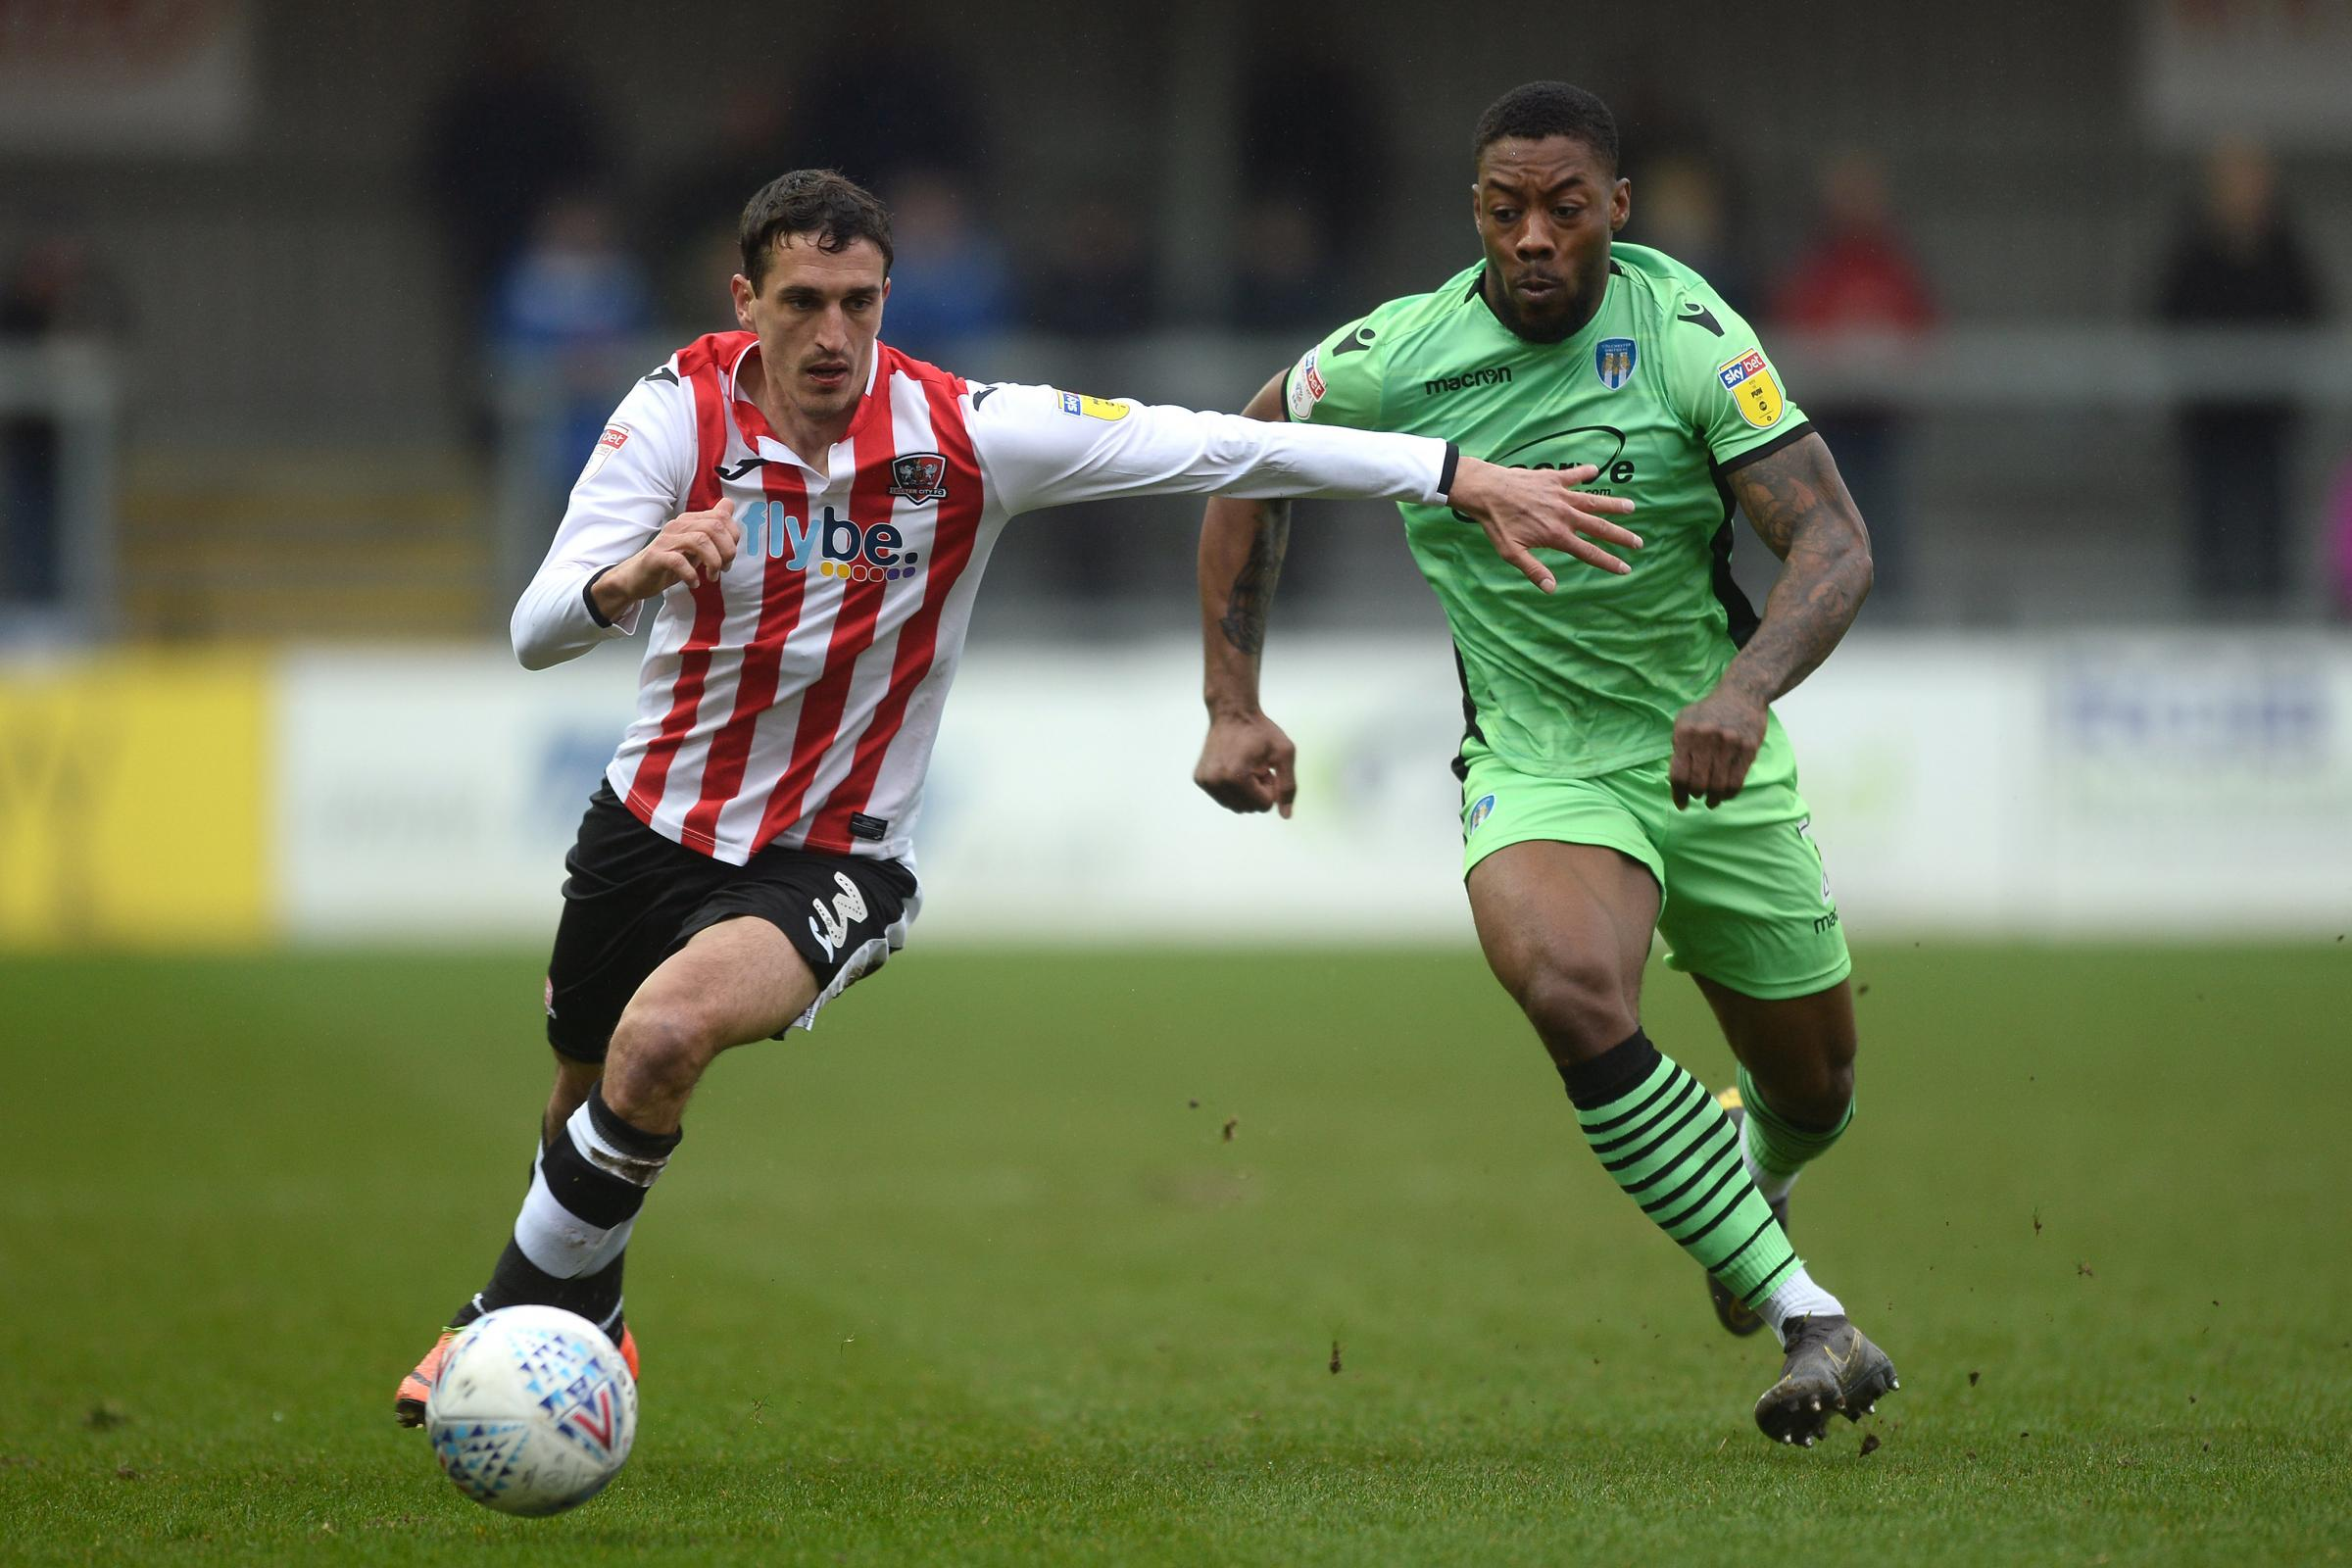 Race for the ball - Colchester United's Ryan Jackson looks to get past Craig Woodman of Exeter City during the U's 3-0 loss Picture: RICHARD BLAXALL